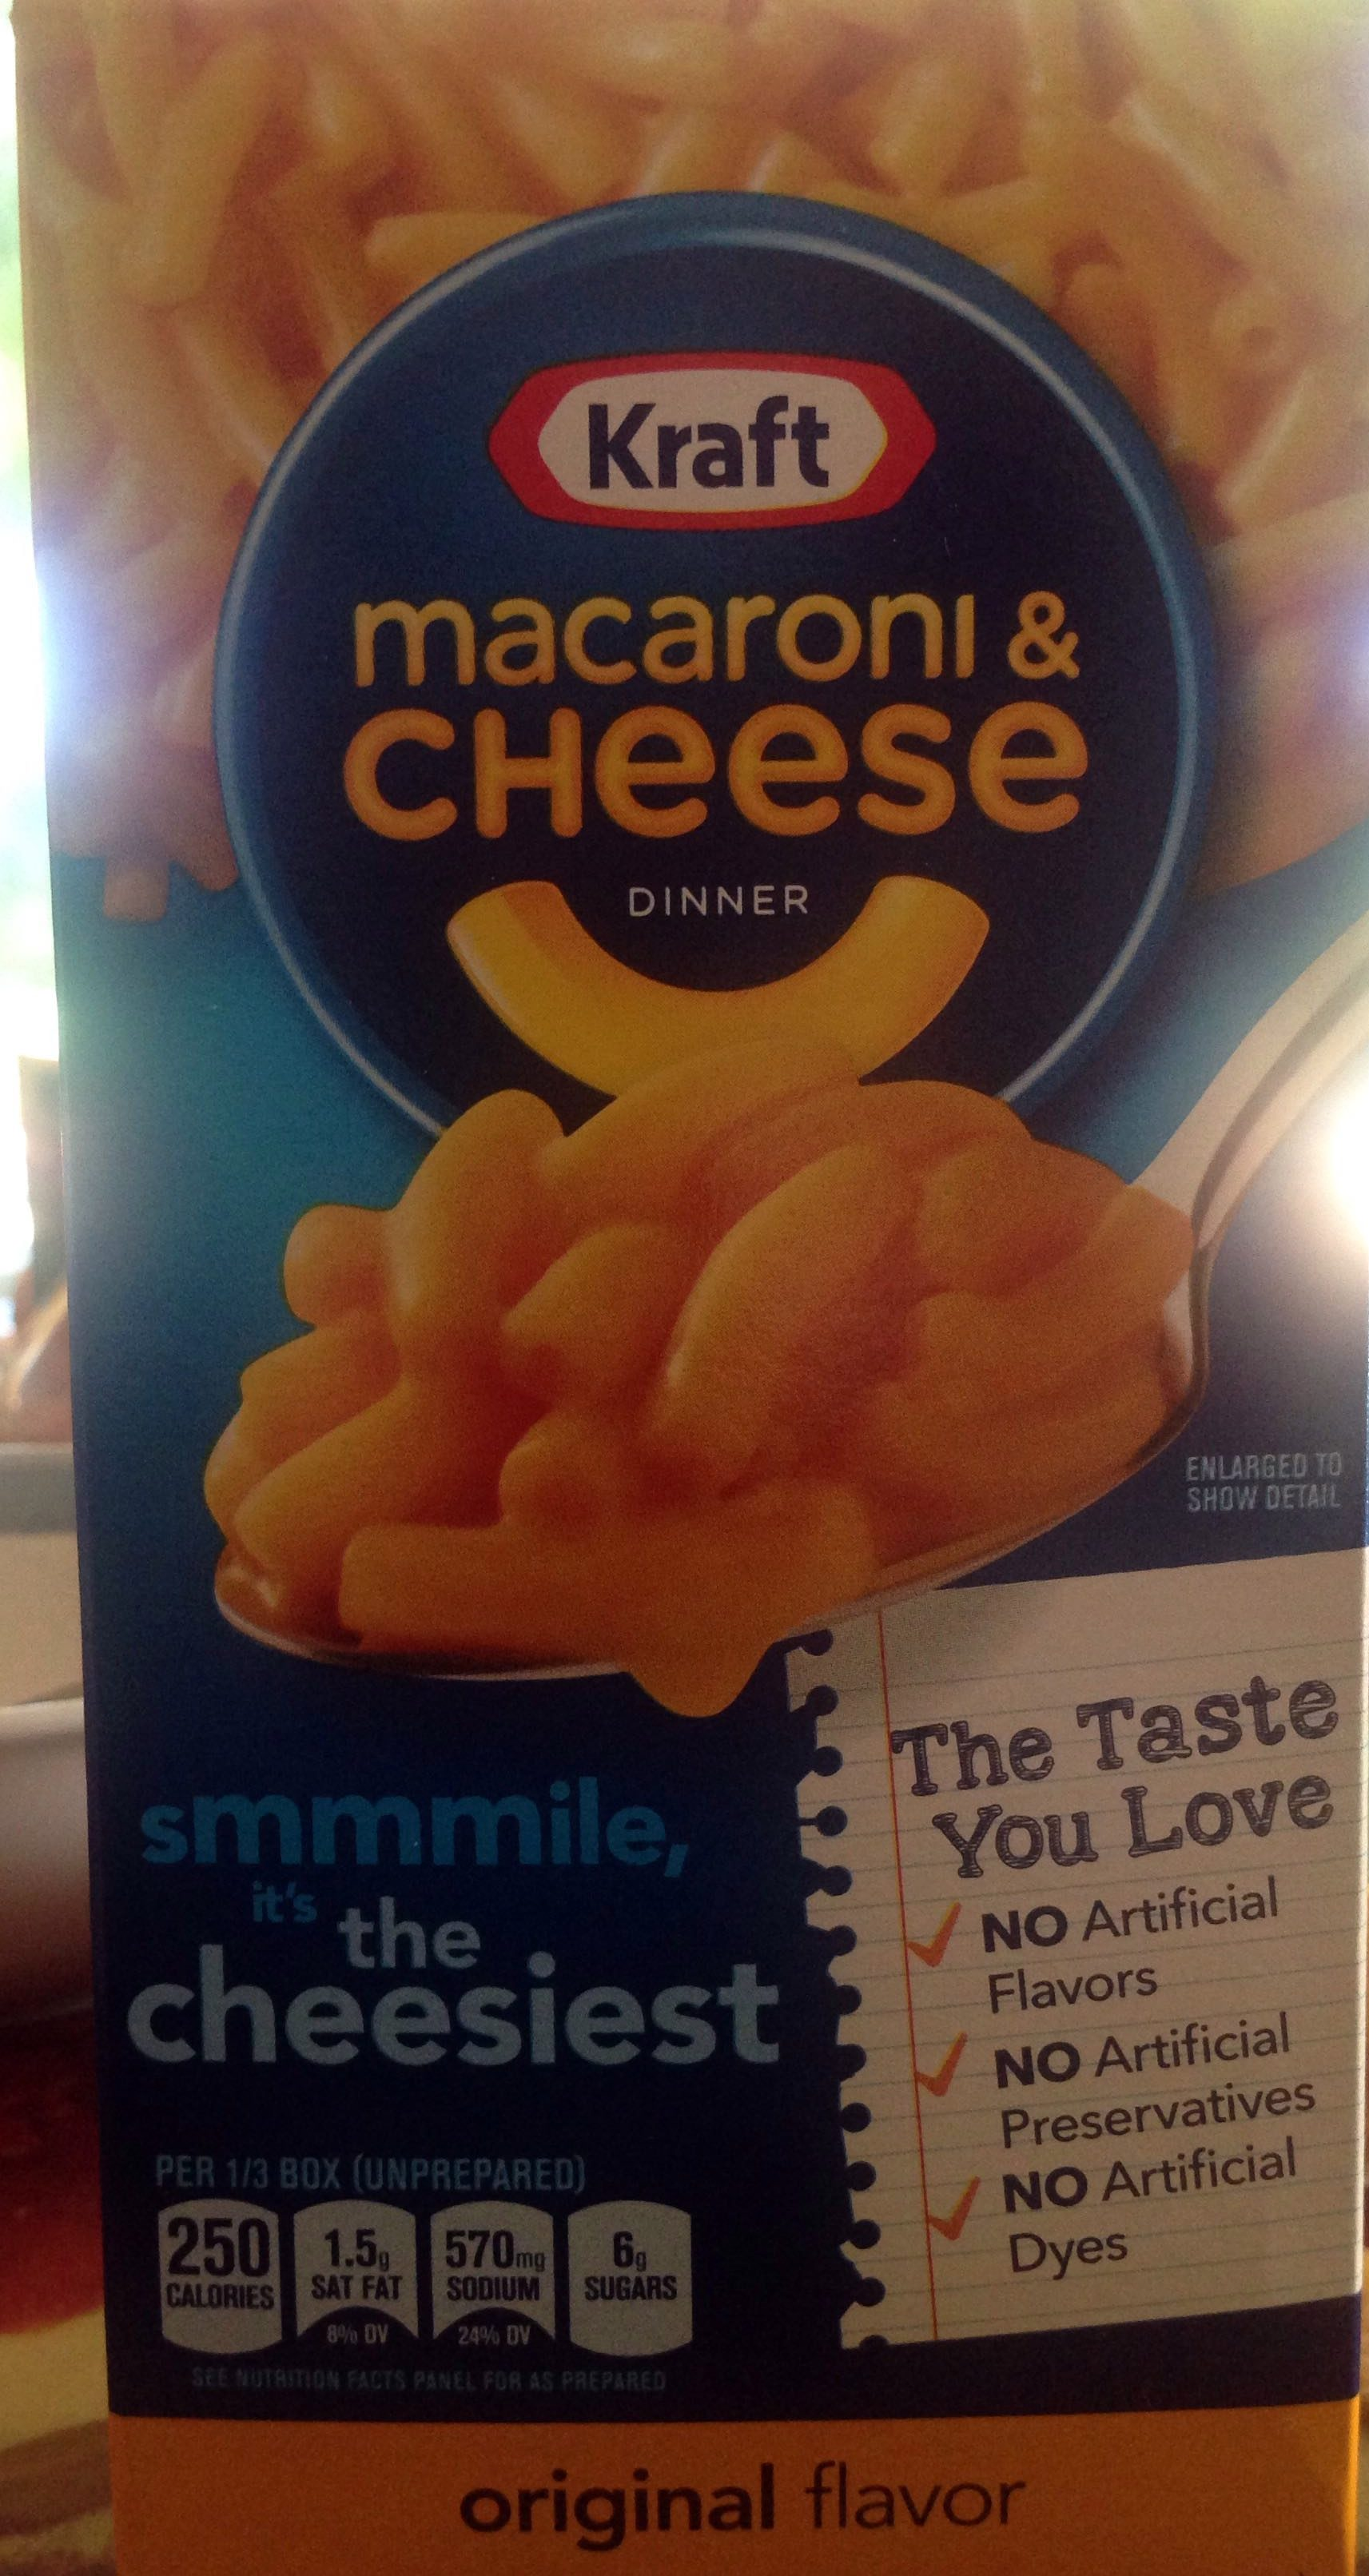 Macaroni & cheese dinner - Product